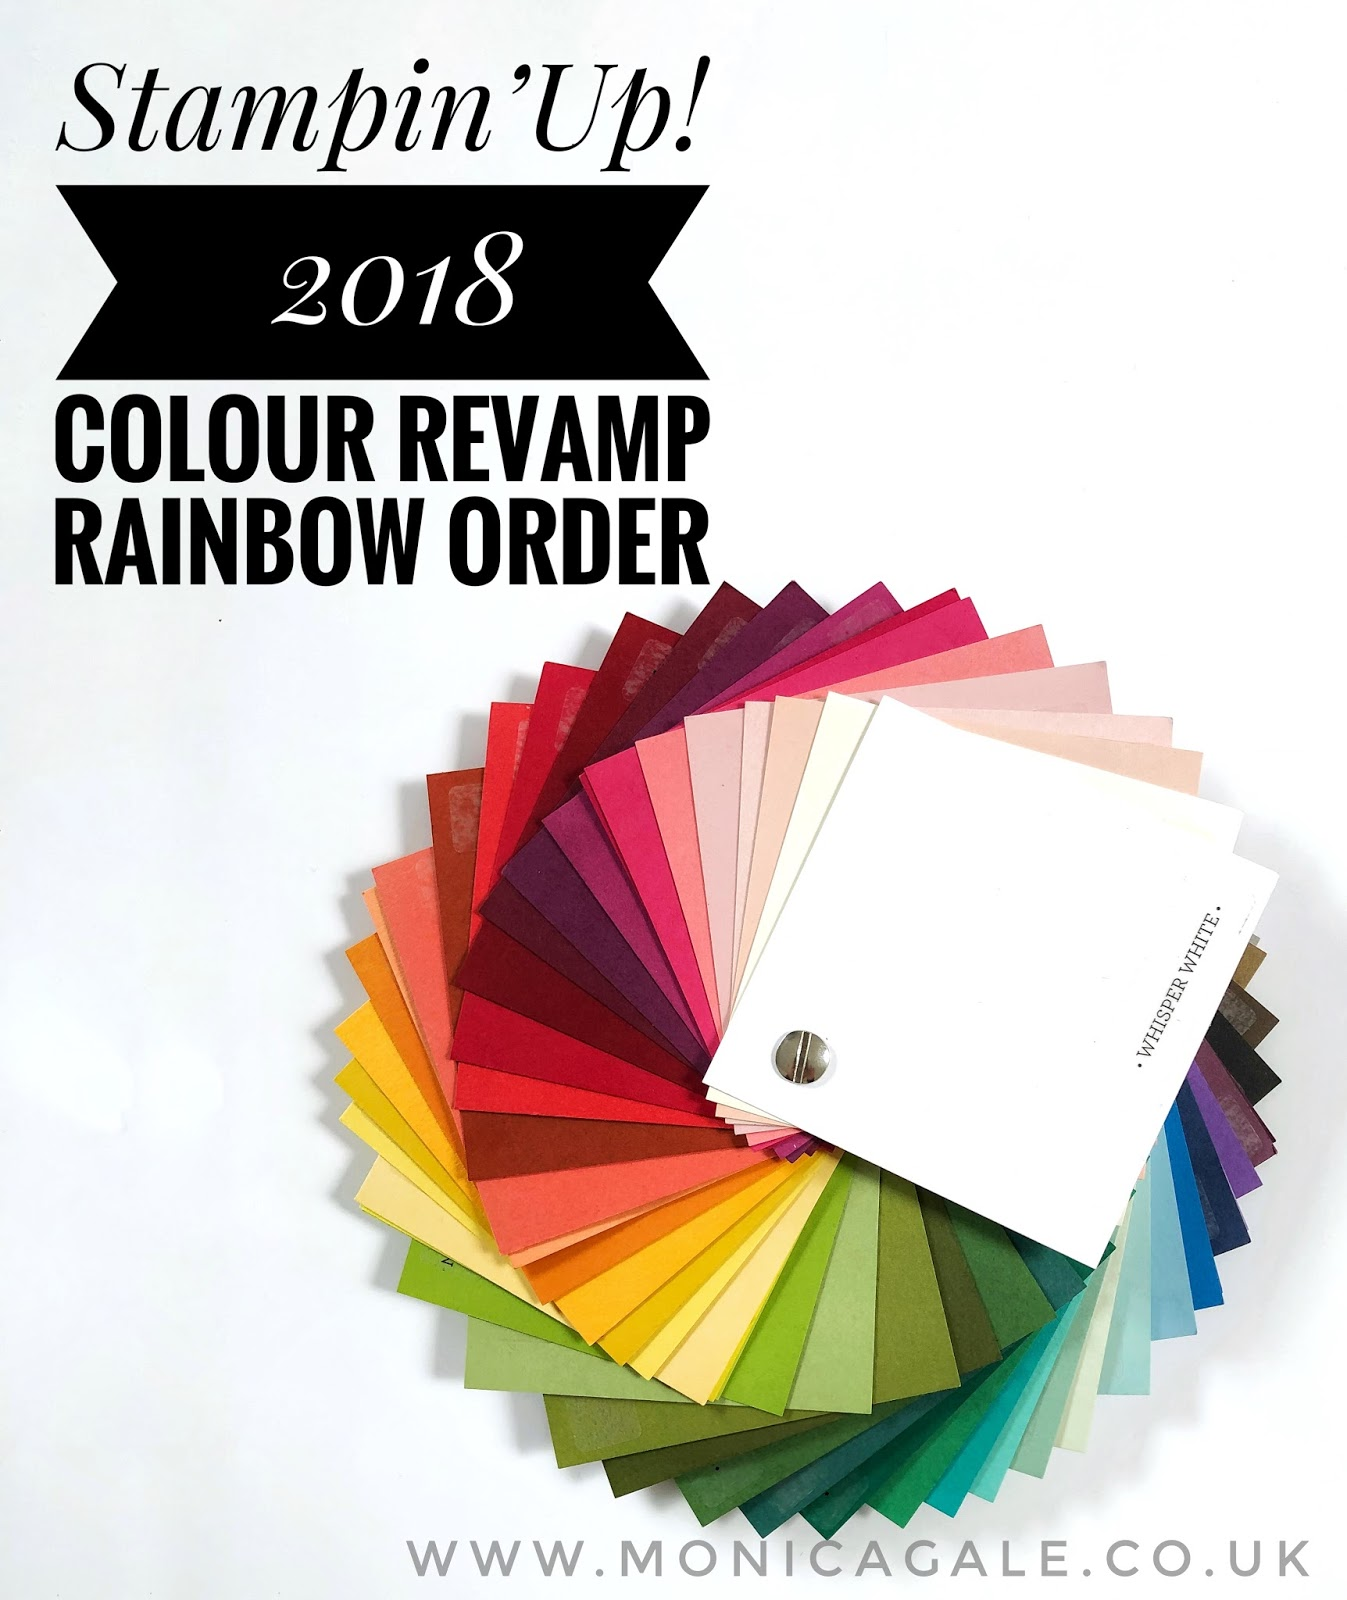 Stampin Up Rainbow Order 2018 #rainbow #stampinup #colourrevamp